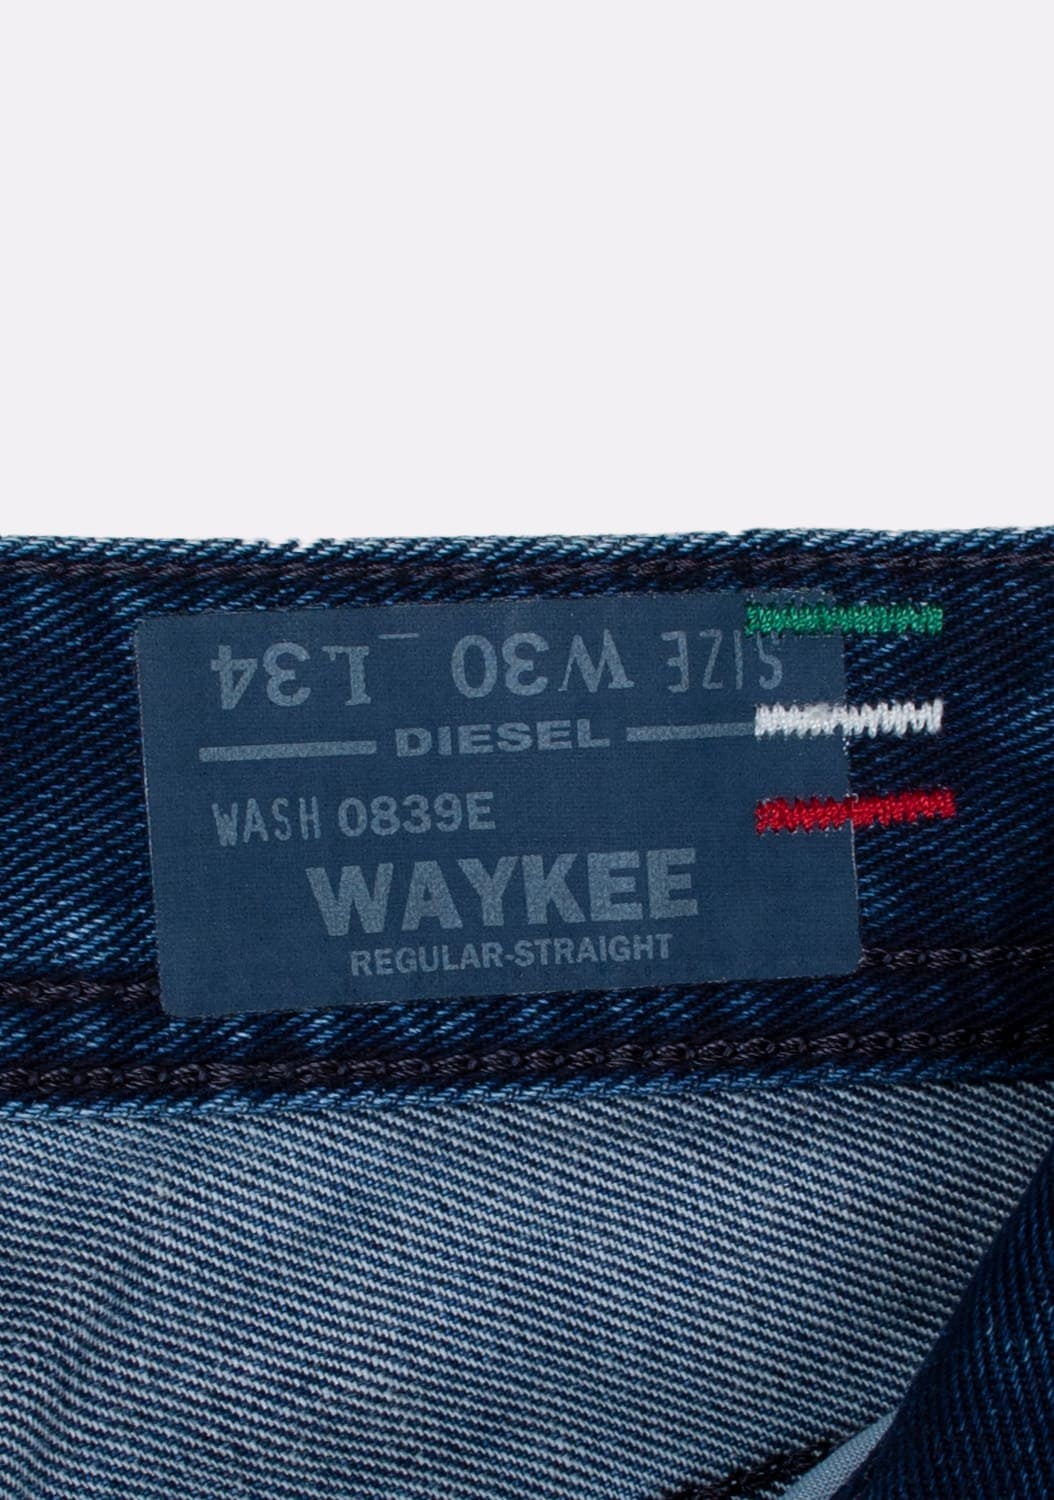 Diesel-Waykee-0839E-Regular-Straight-dydis-30-34 (4)